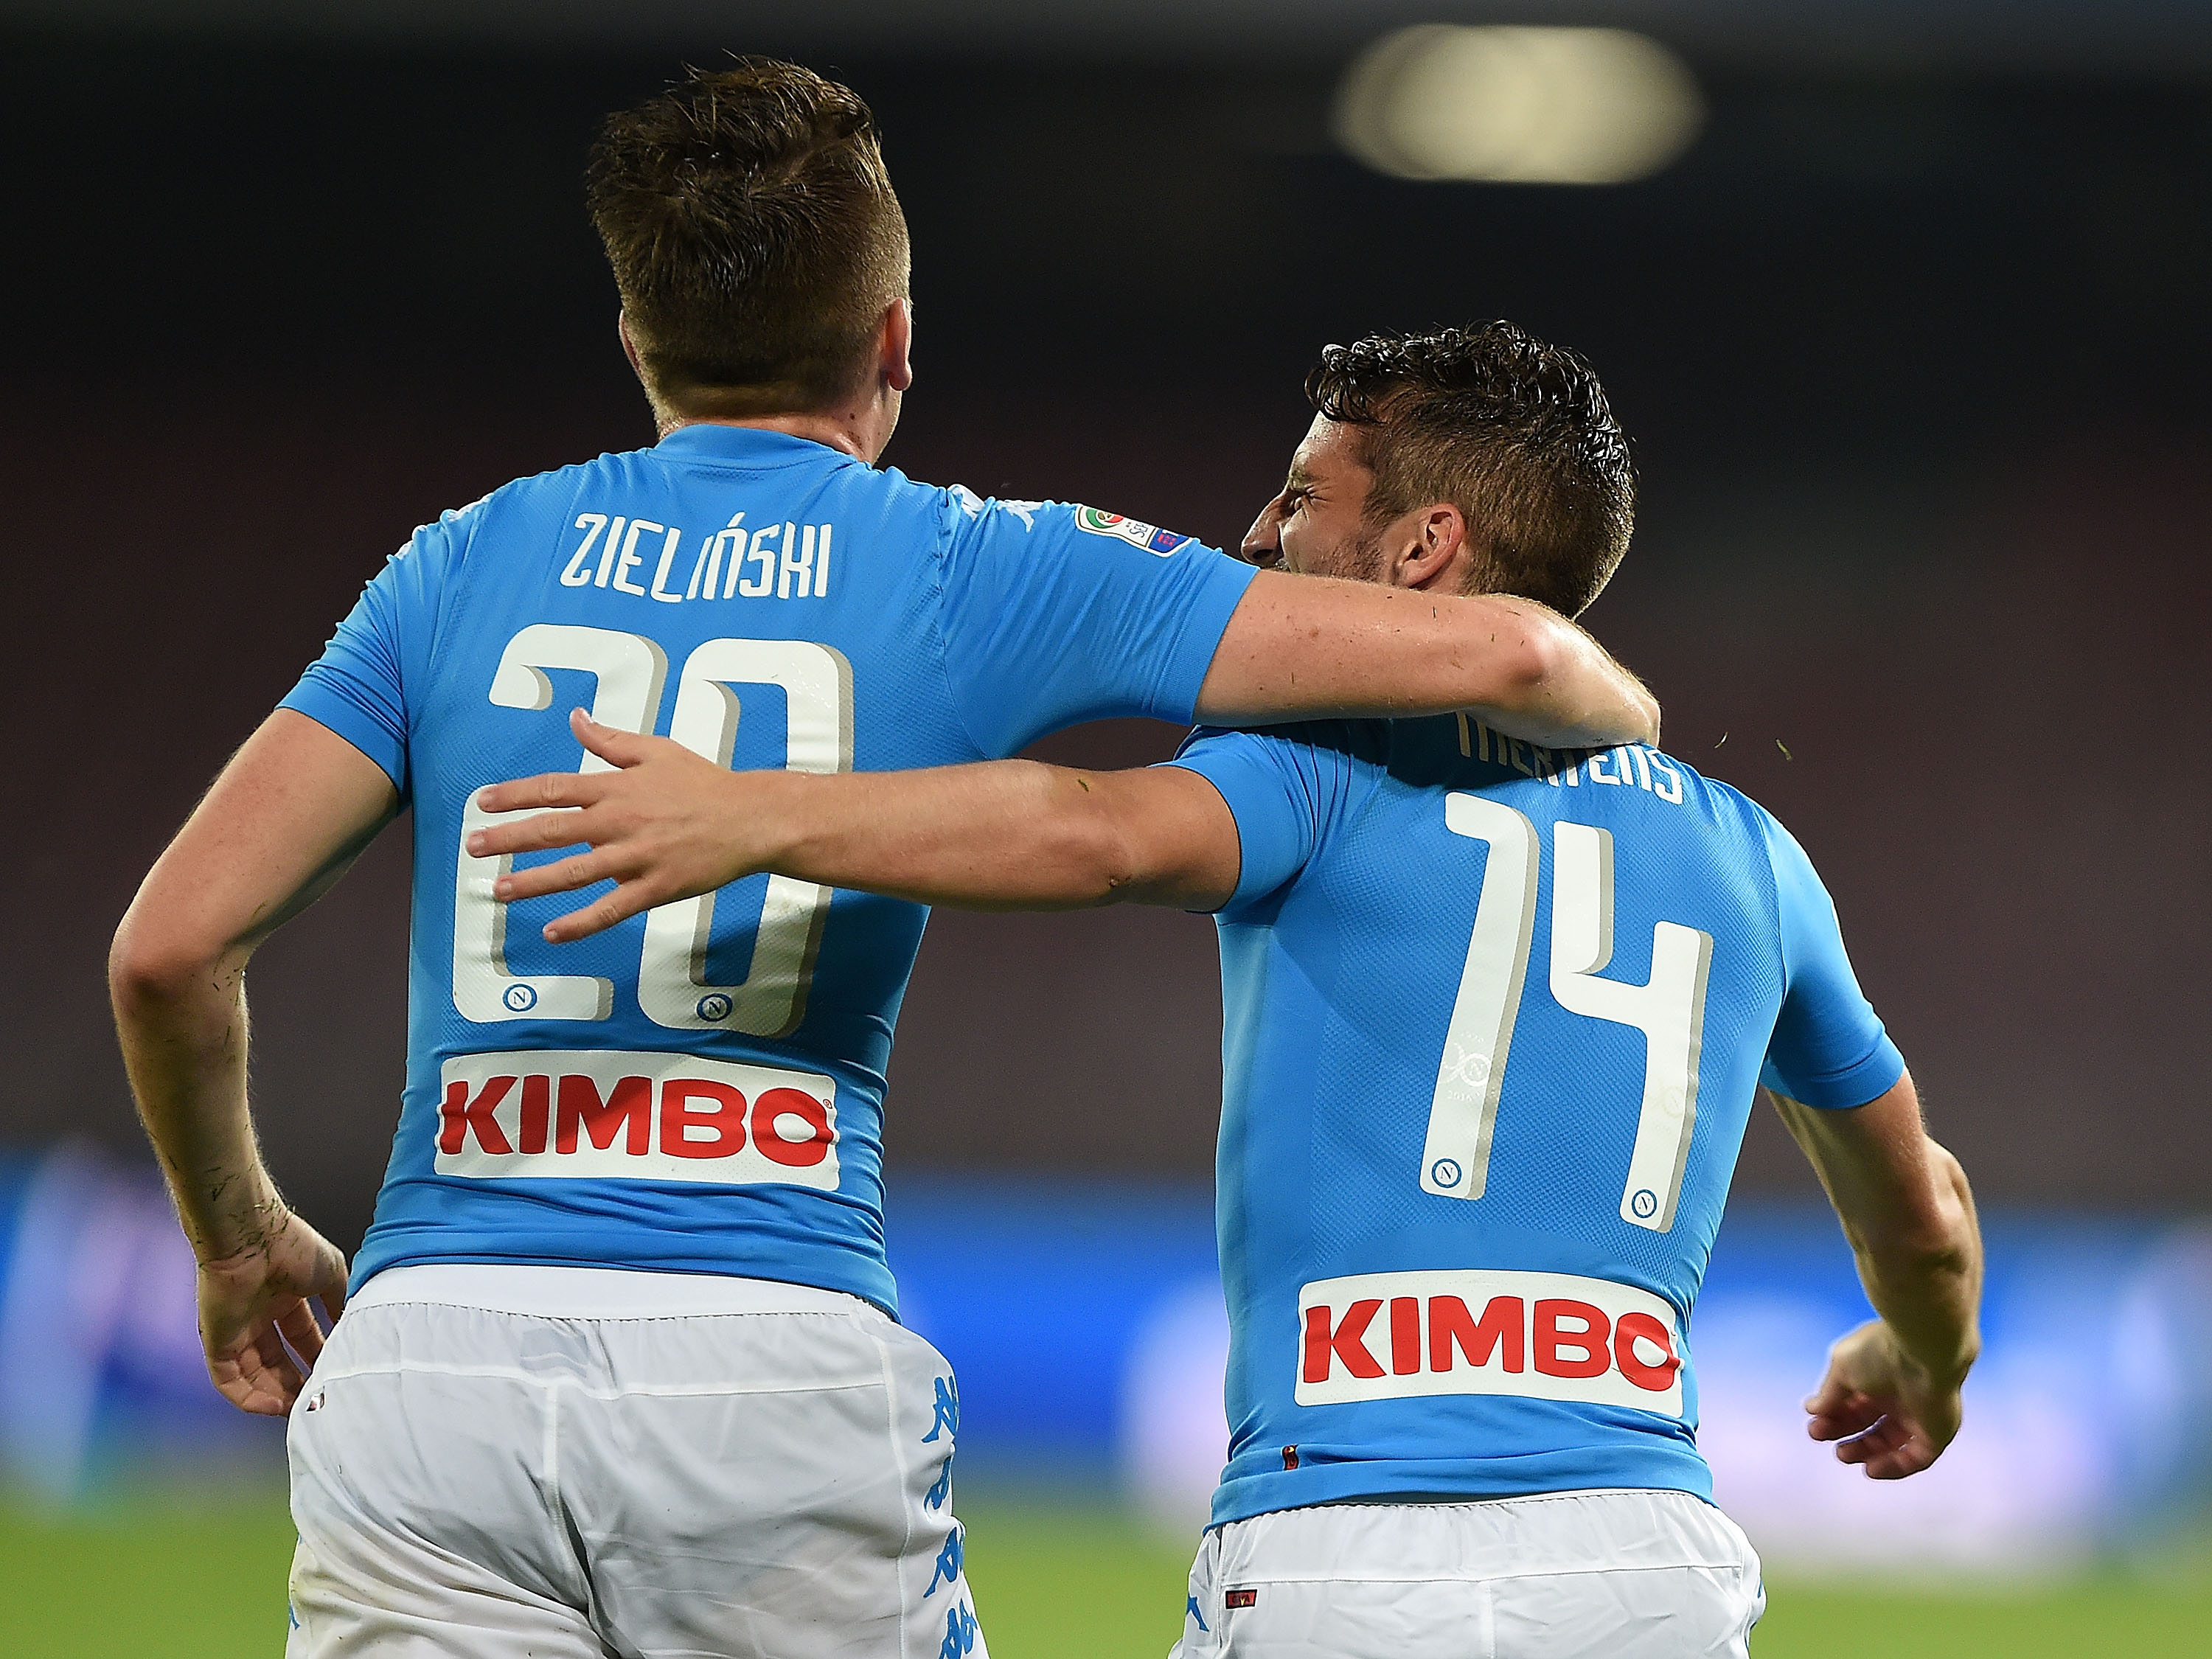 NAPLES, ITALY - OCTOBER 26: Dries Mertens and Piotr Zielinski of Napoli celebrates a goal 1-0 scored by Dries Mertens during the Serie A match between SSC Napoli and Empoli FC at Stadio San Paolo on October 26, 2016 in Naples, Italy. (Photo by Francesco Pecoraro/Getty Images)